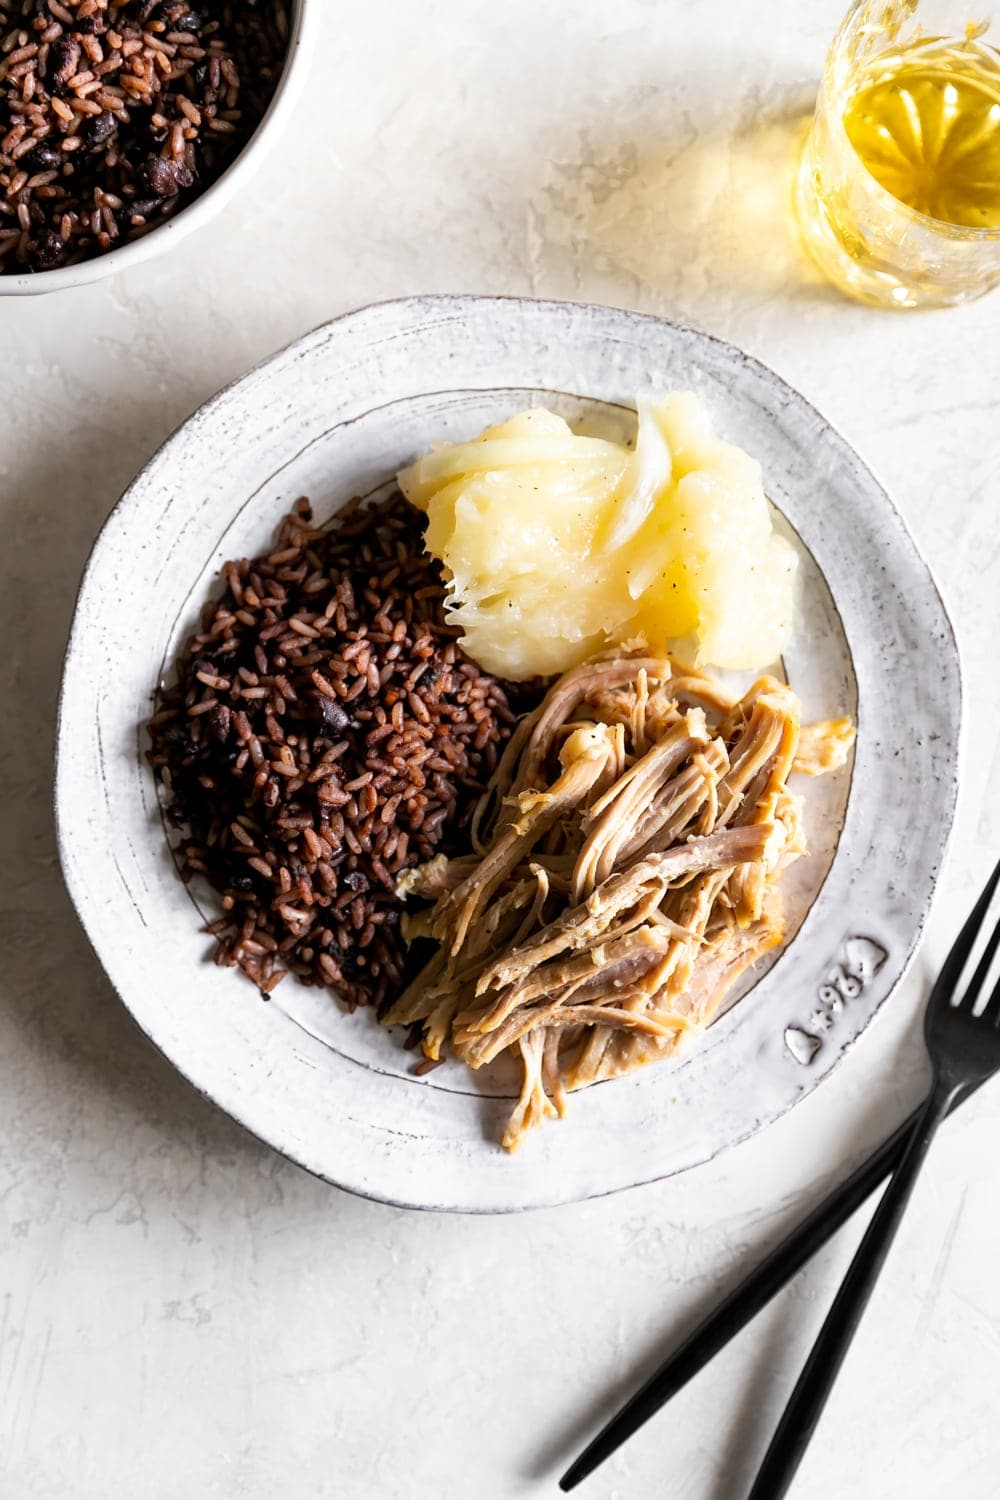 cuban roast pork, cuban arroz congri, yuca with mojo on a plate